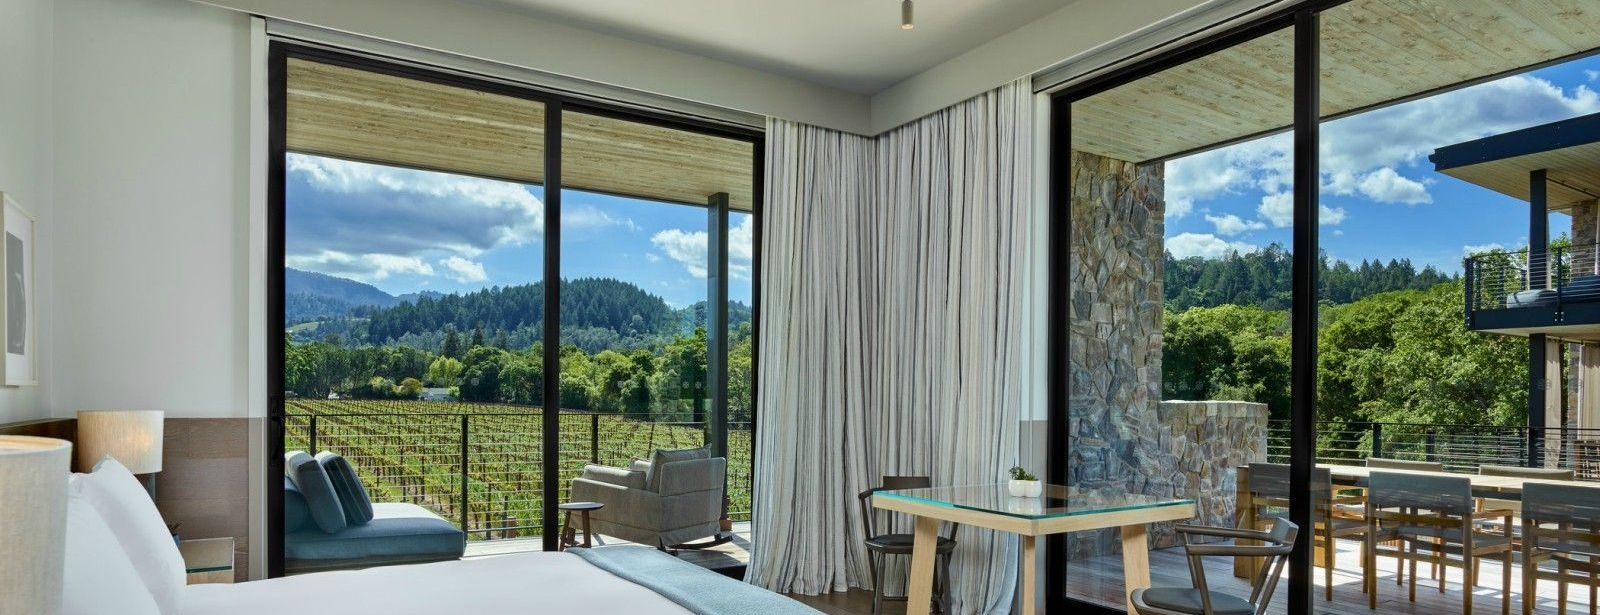 Las Alcobas, a Luxury Collection Hotel, Napa Valley - Junior Suite with Outdoor Living Space